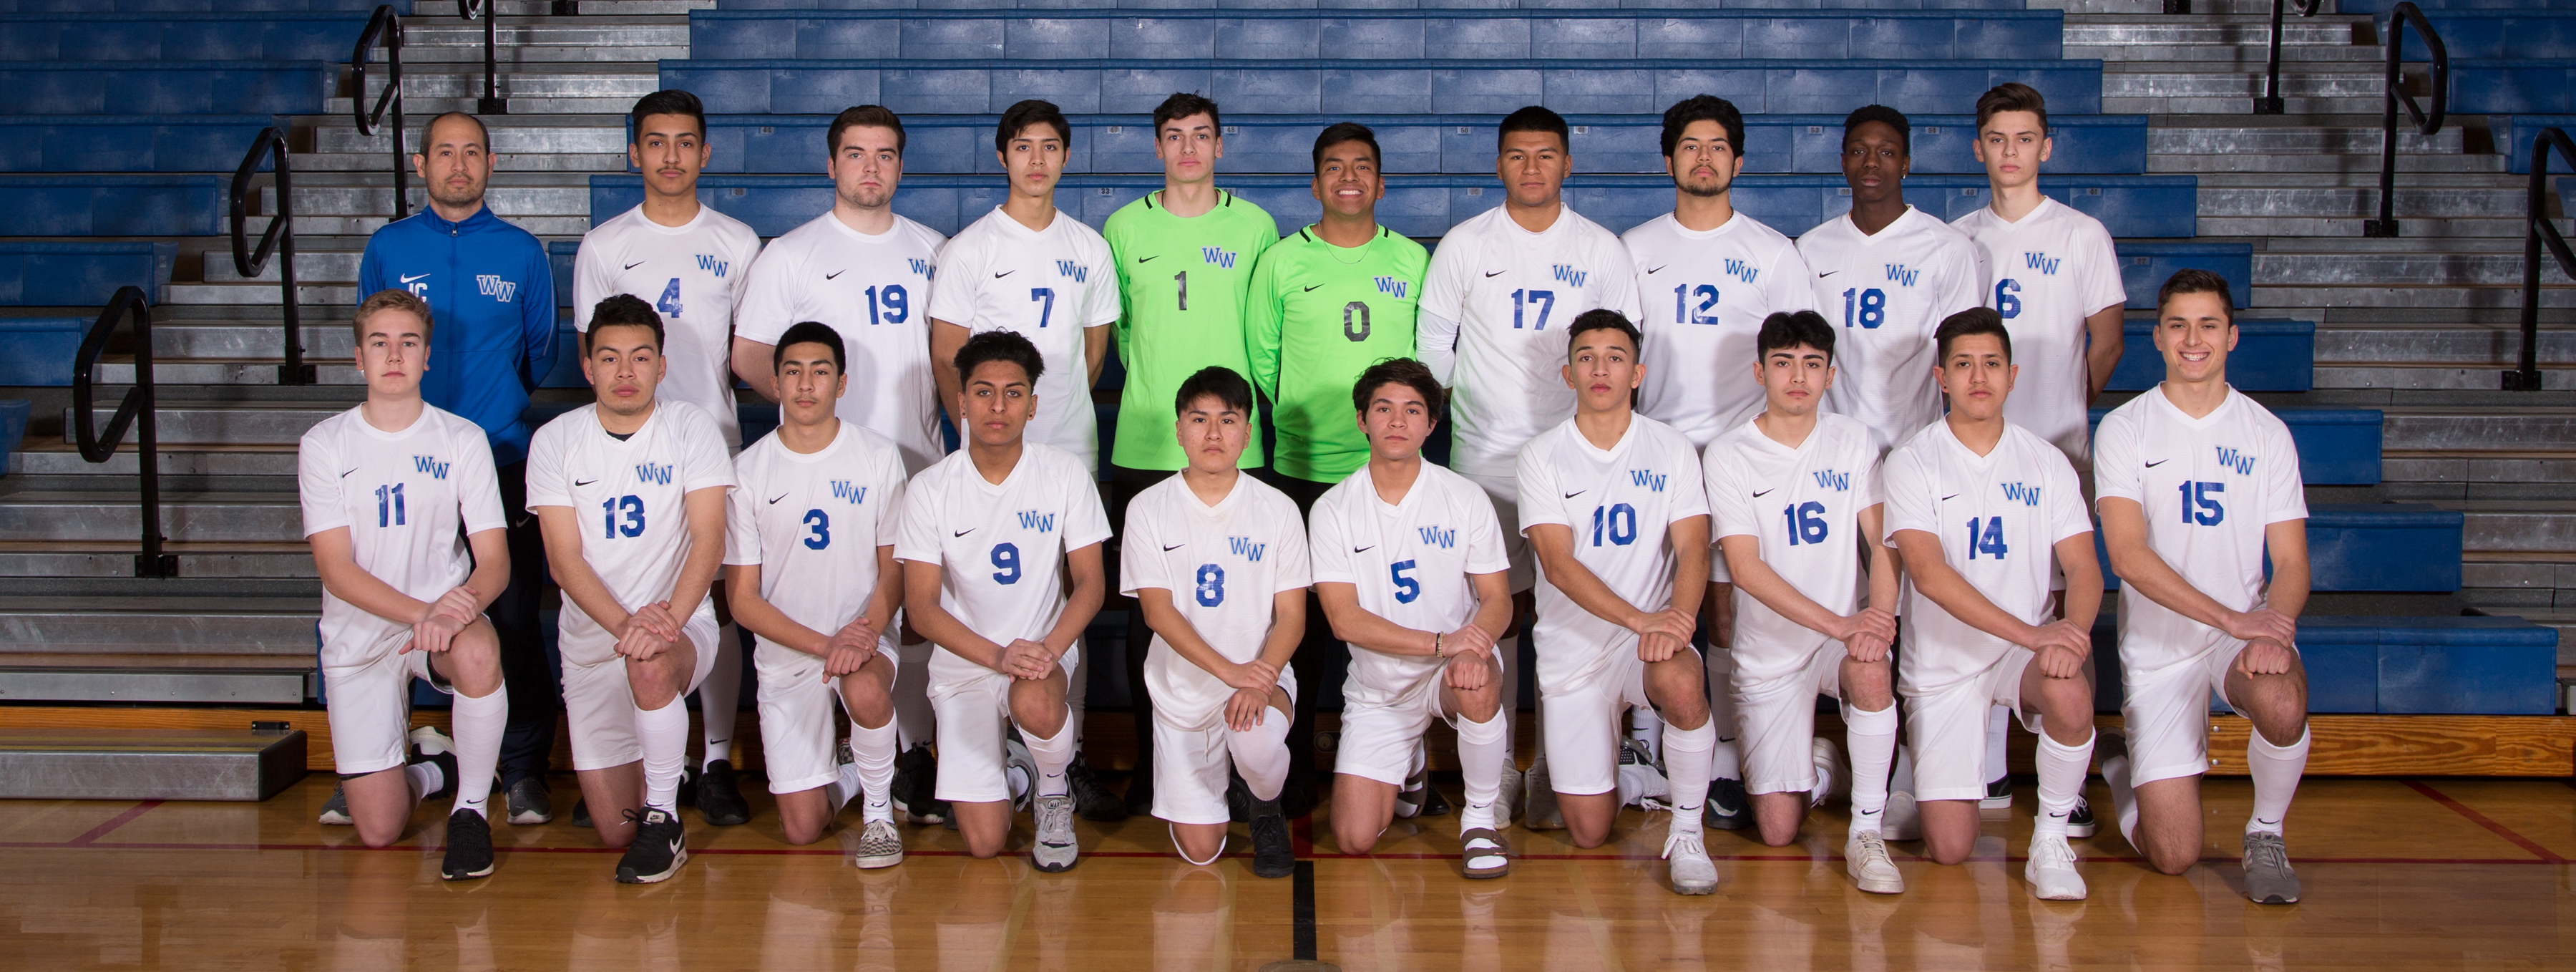 images/athletics/Soccer_Boys/2019_Varsity.jpg